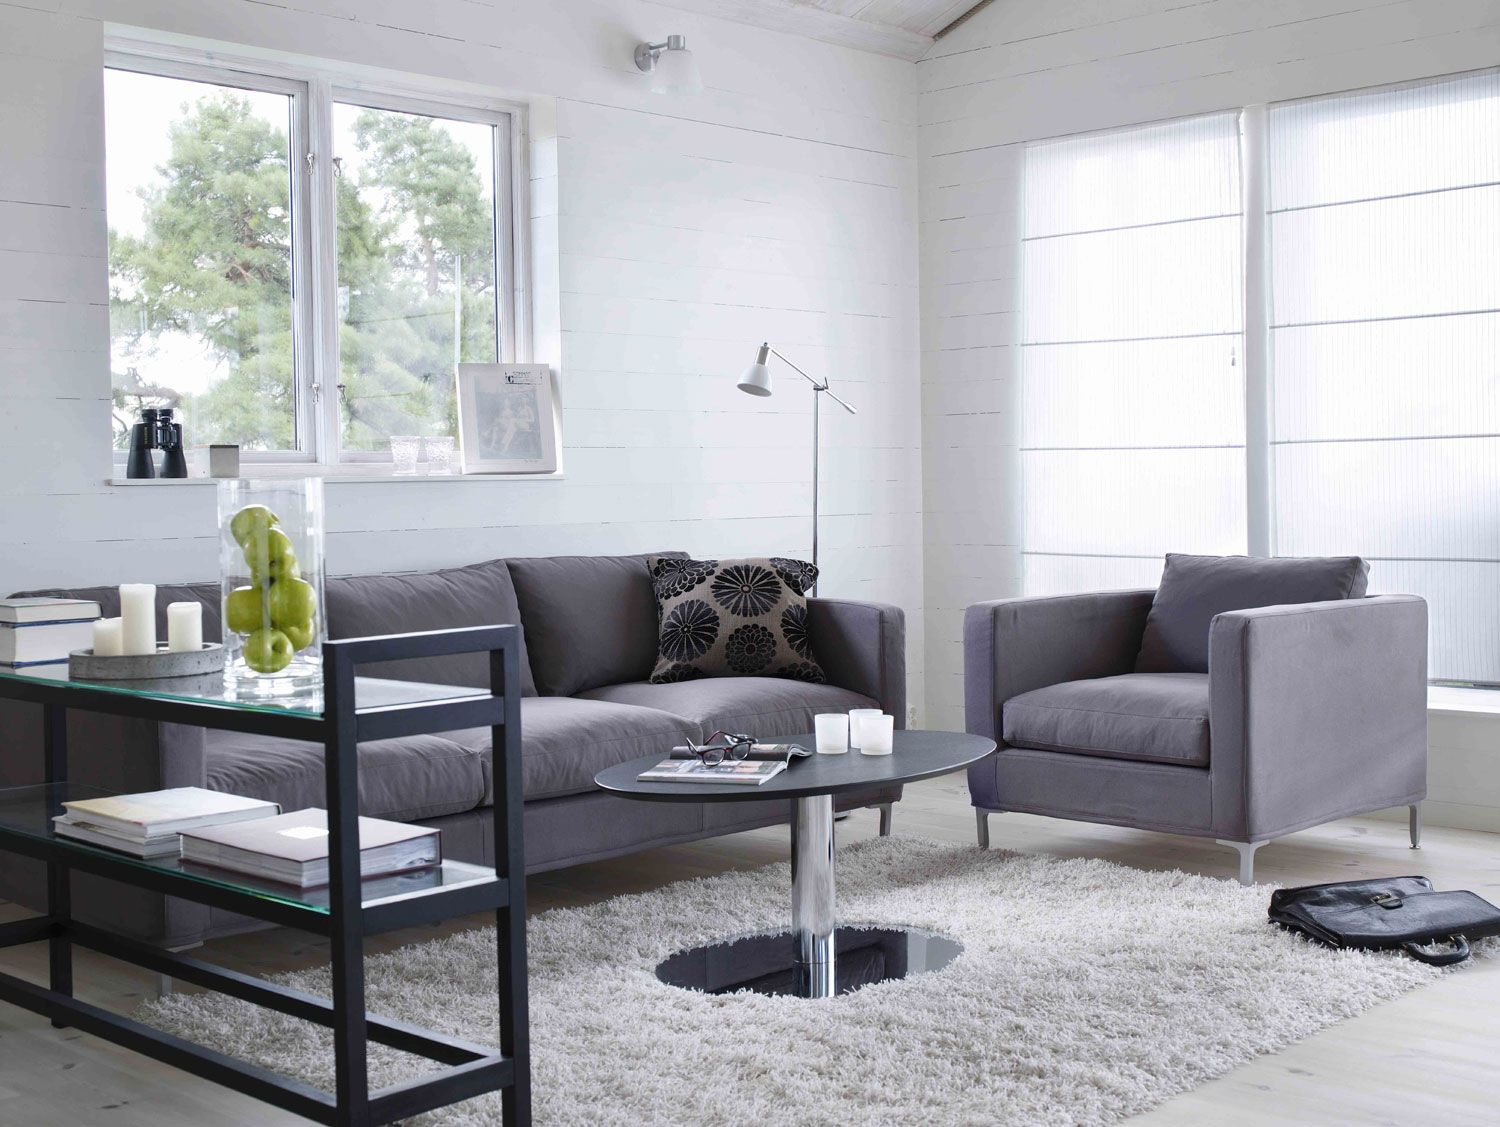 Best Ikea Living Room Ideas Google Search Ikea Living Room 400 x 300